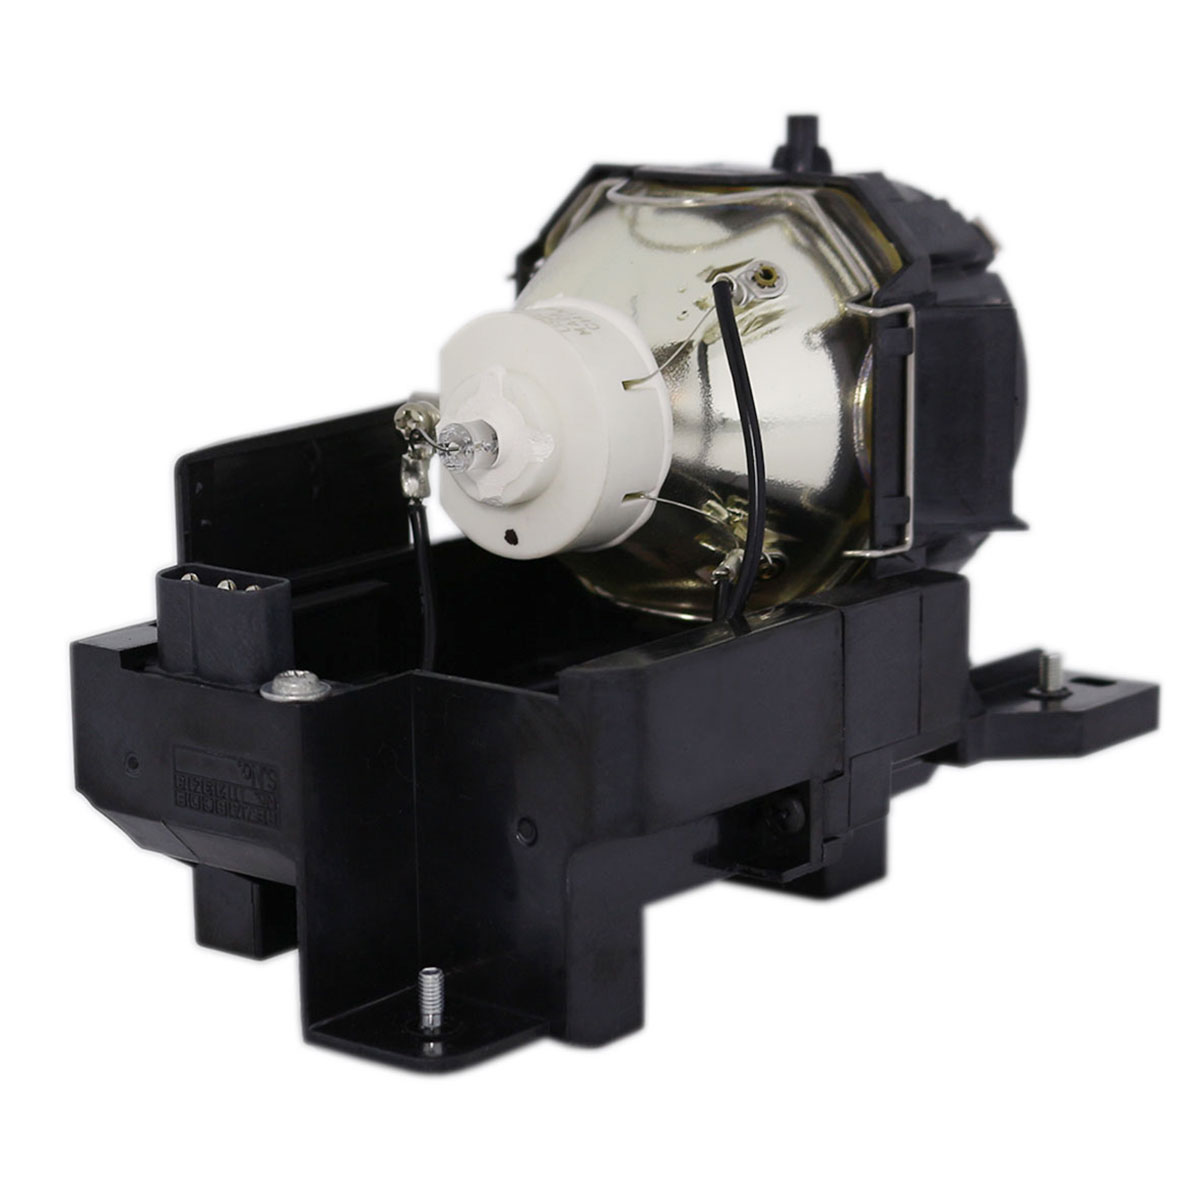 Original Ushio Projector Lamp Replacement for 3M 78-6969-9998-2 (Bulb Only) - image 1 de 5